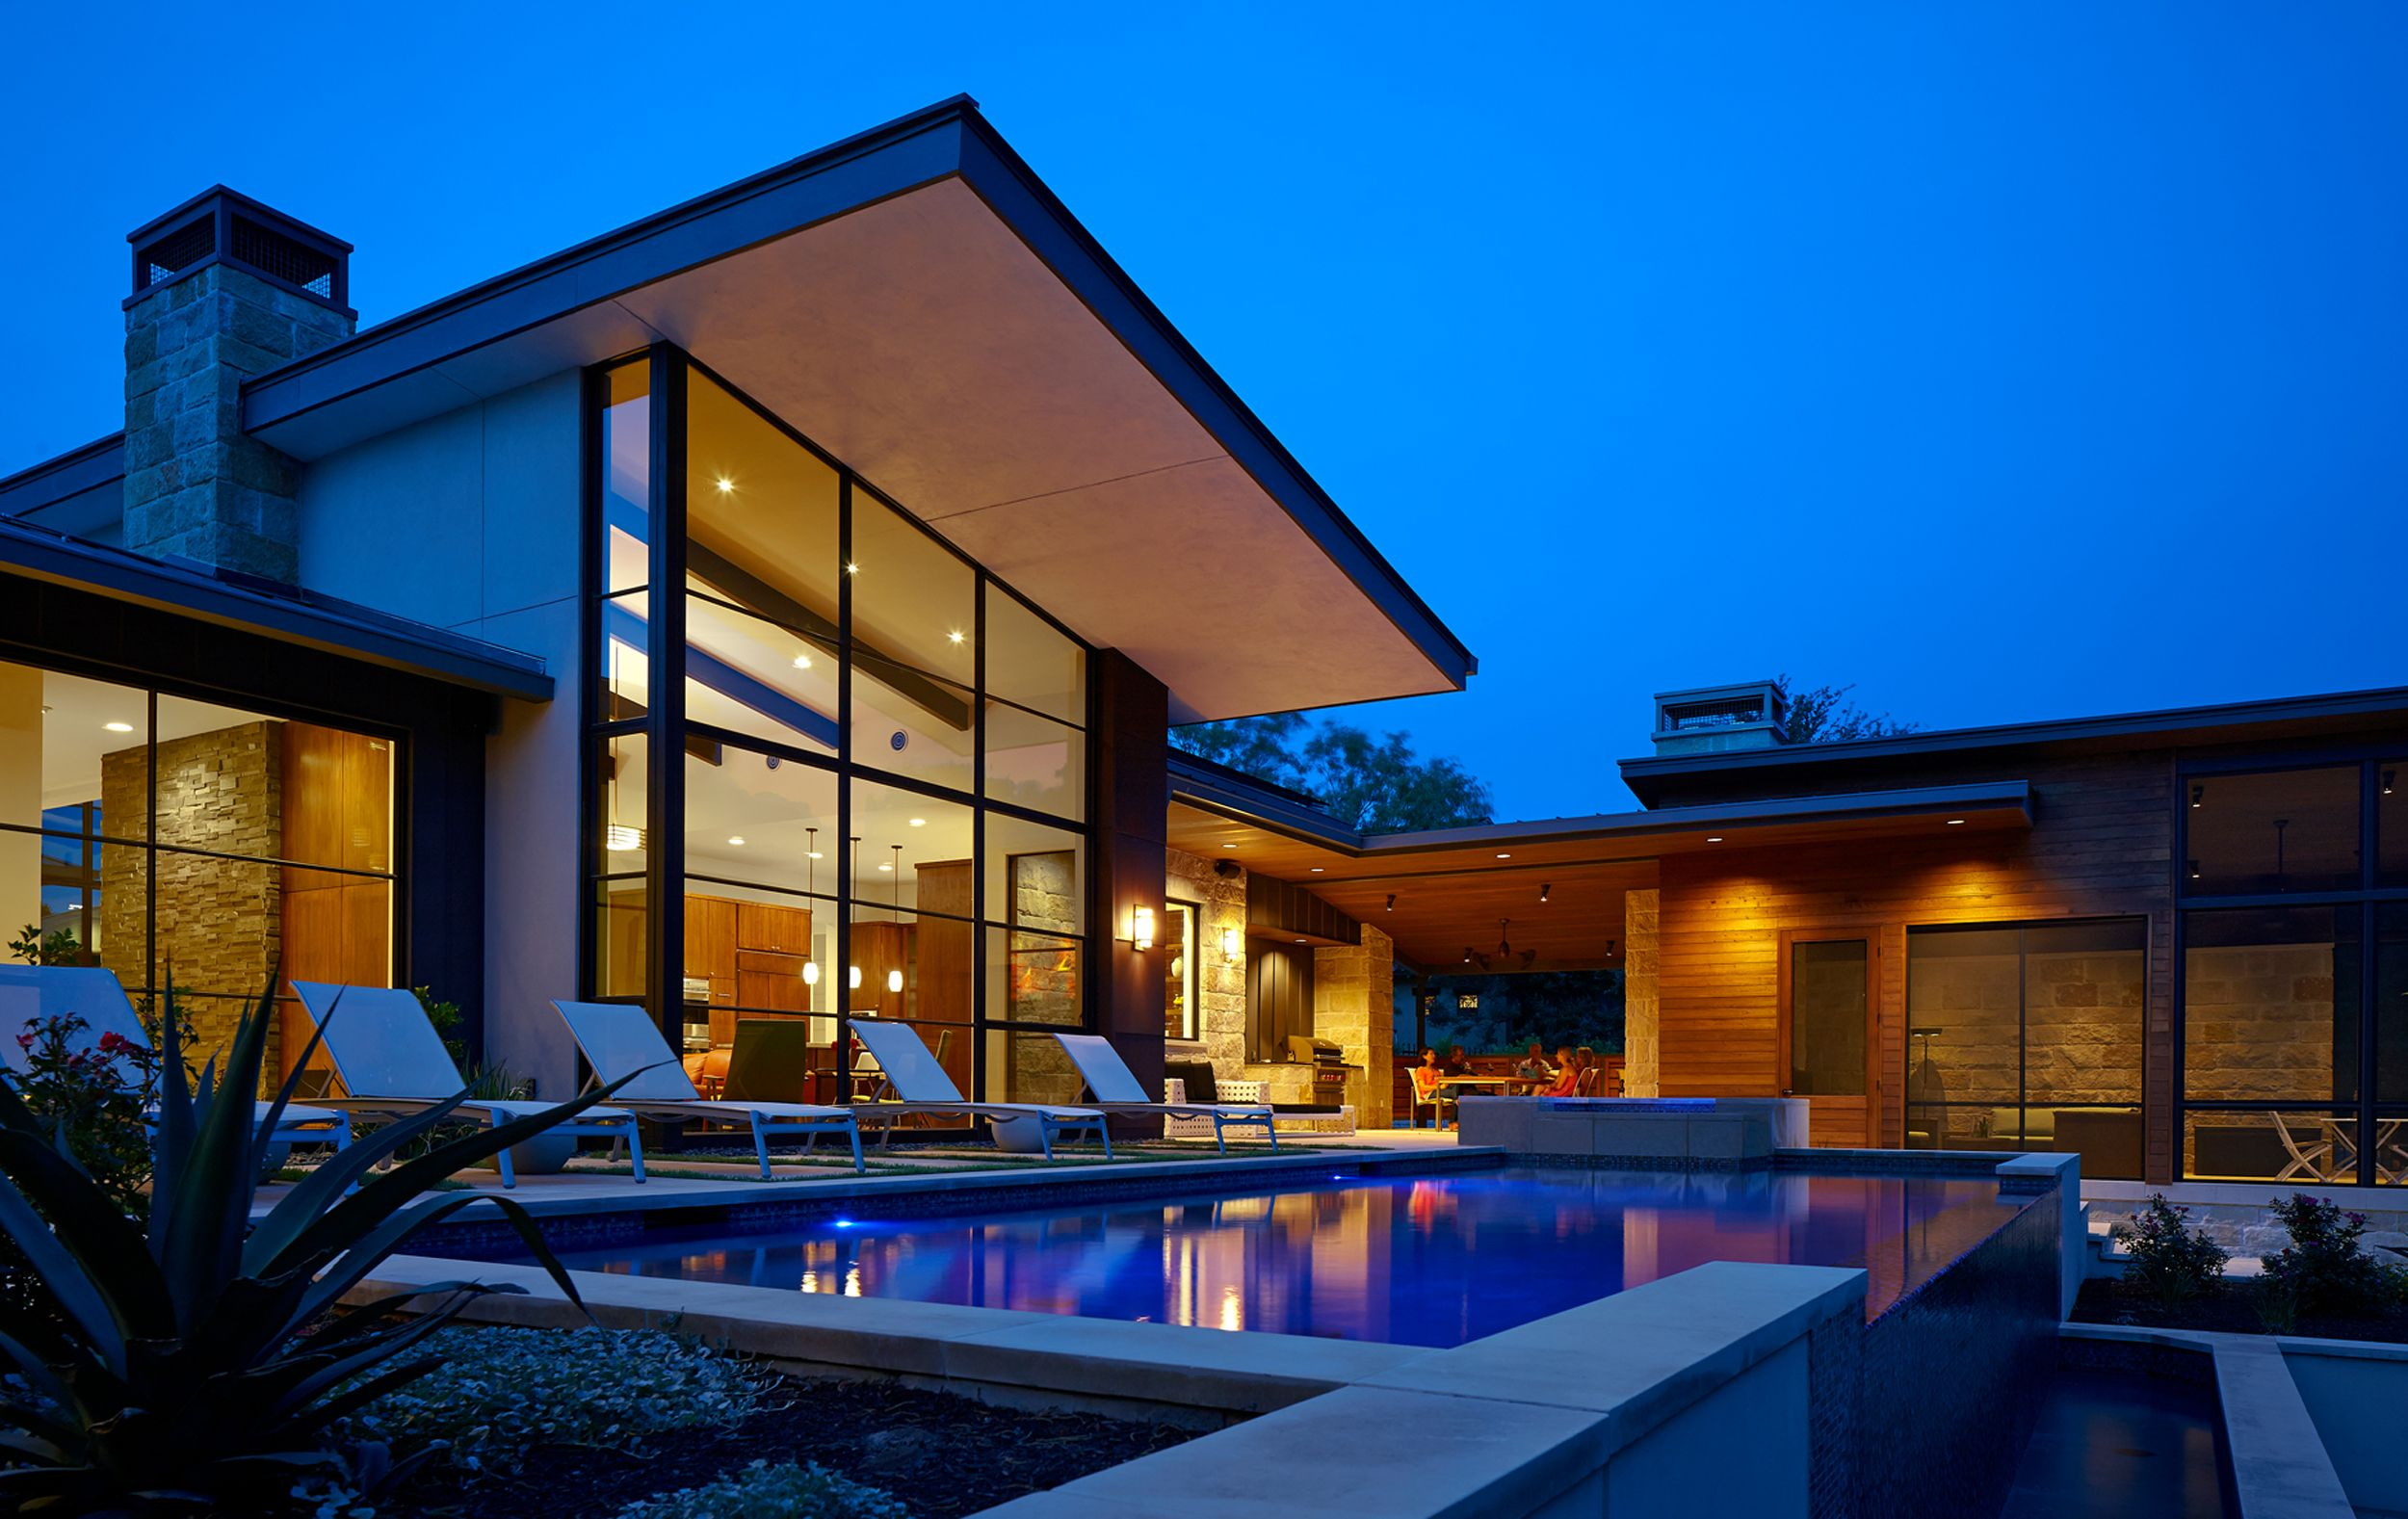 Pool outdoor living of the caslano residence - Ranch americain poet interiors houston ...